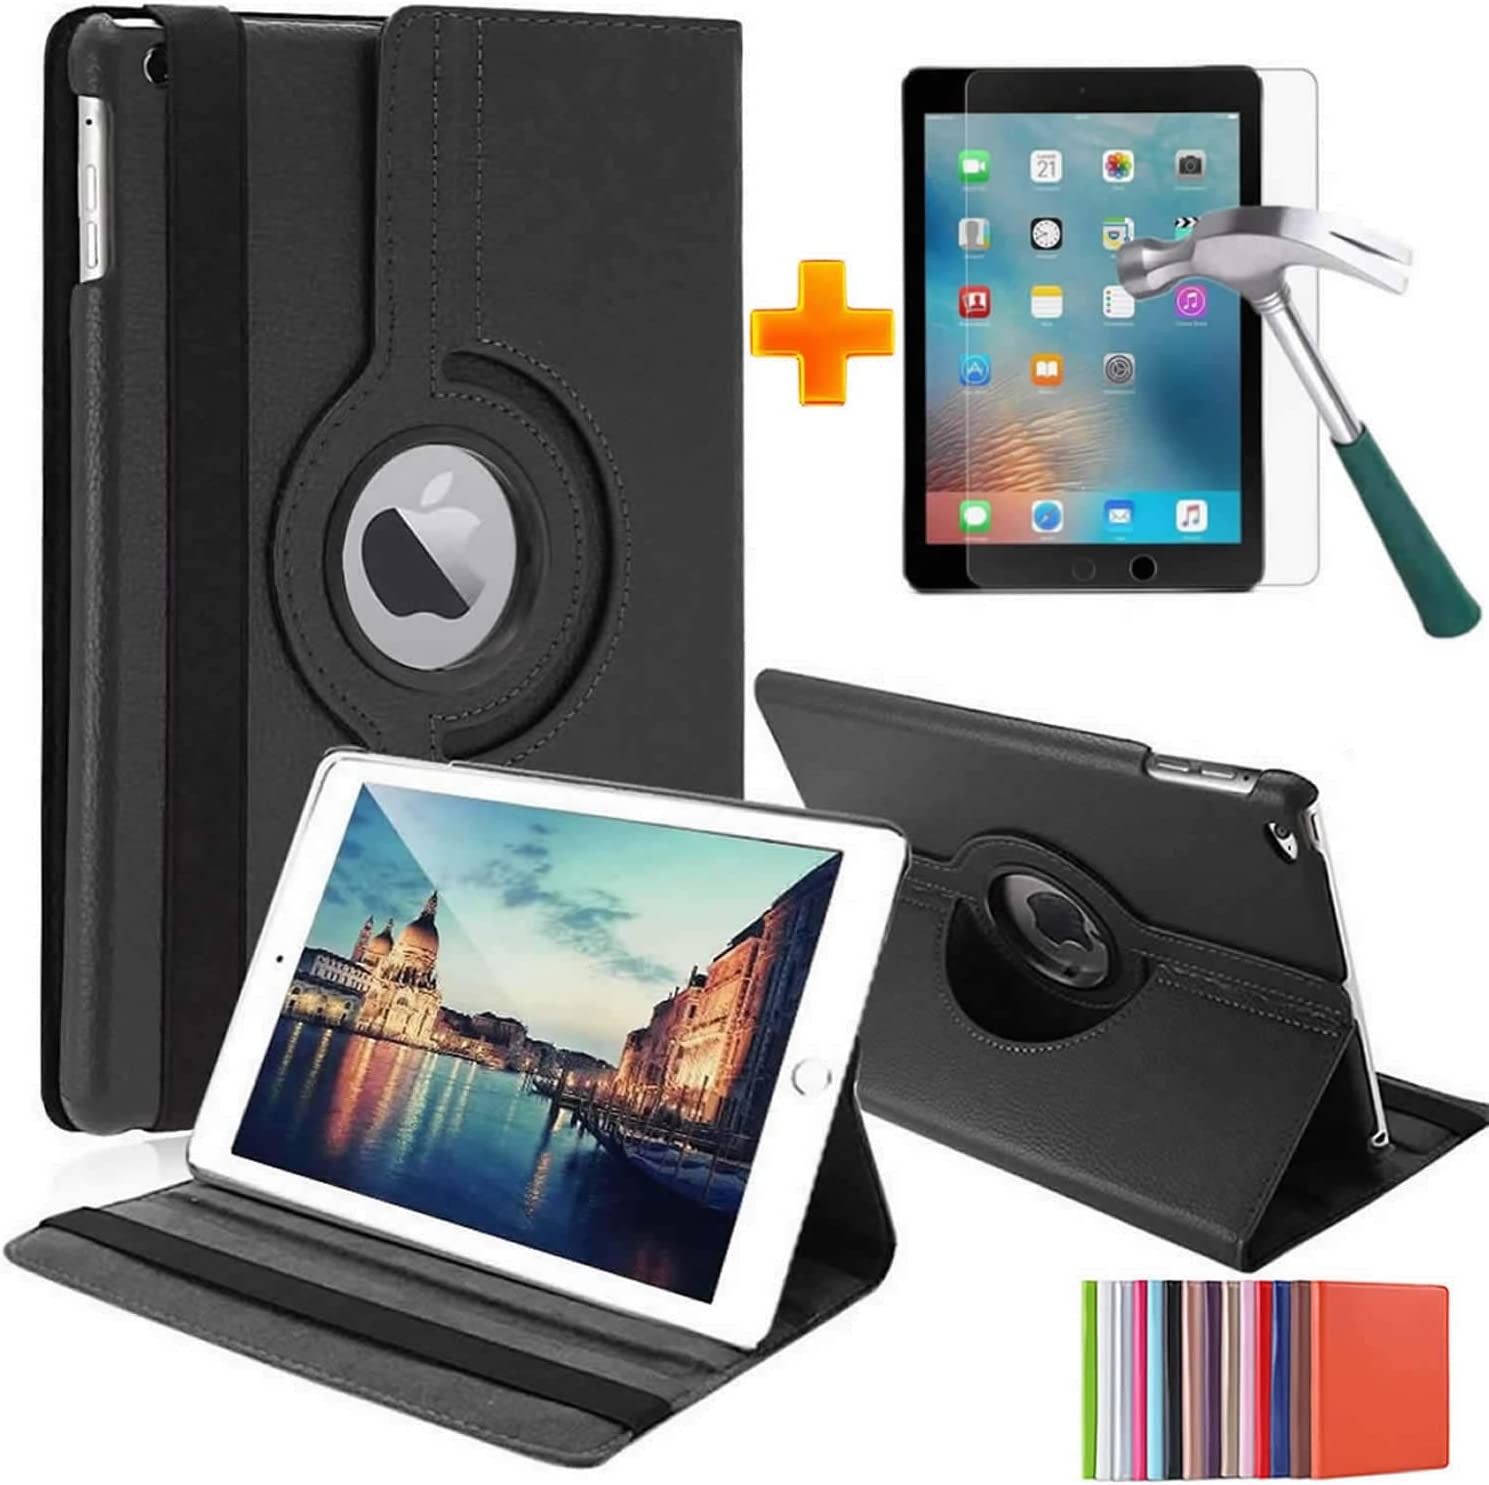 HualuBro Case for iPad 10.2 2019 (7th Generation), 360 Degree Rotating PU Leather Stand Protective Case Cover with Tempered Glass Screen Protector for Apple iPad 7th Gen 2019 (Black)